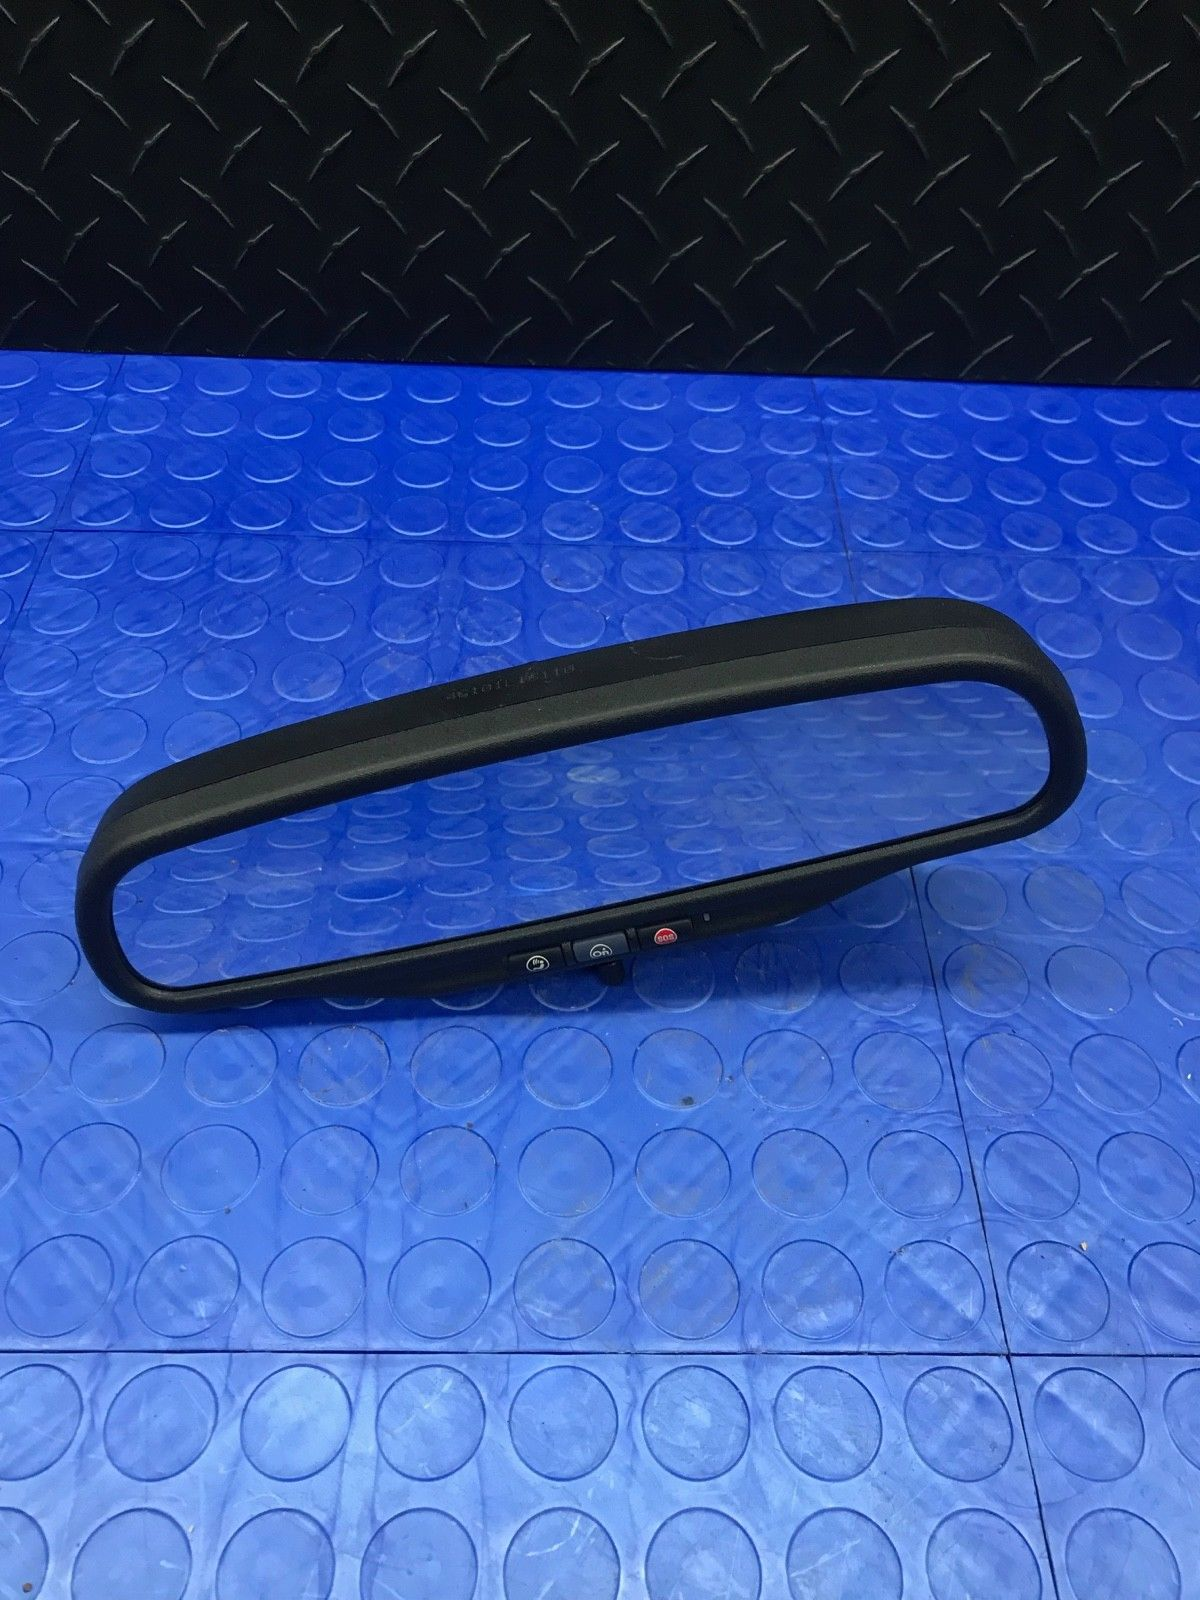 OE GM GMC Chevrolet Part Onstar Rearview Mirror W/ Map Lights MD / 883459596  Does not apply